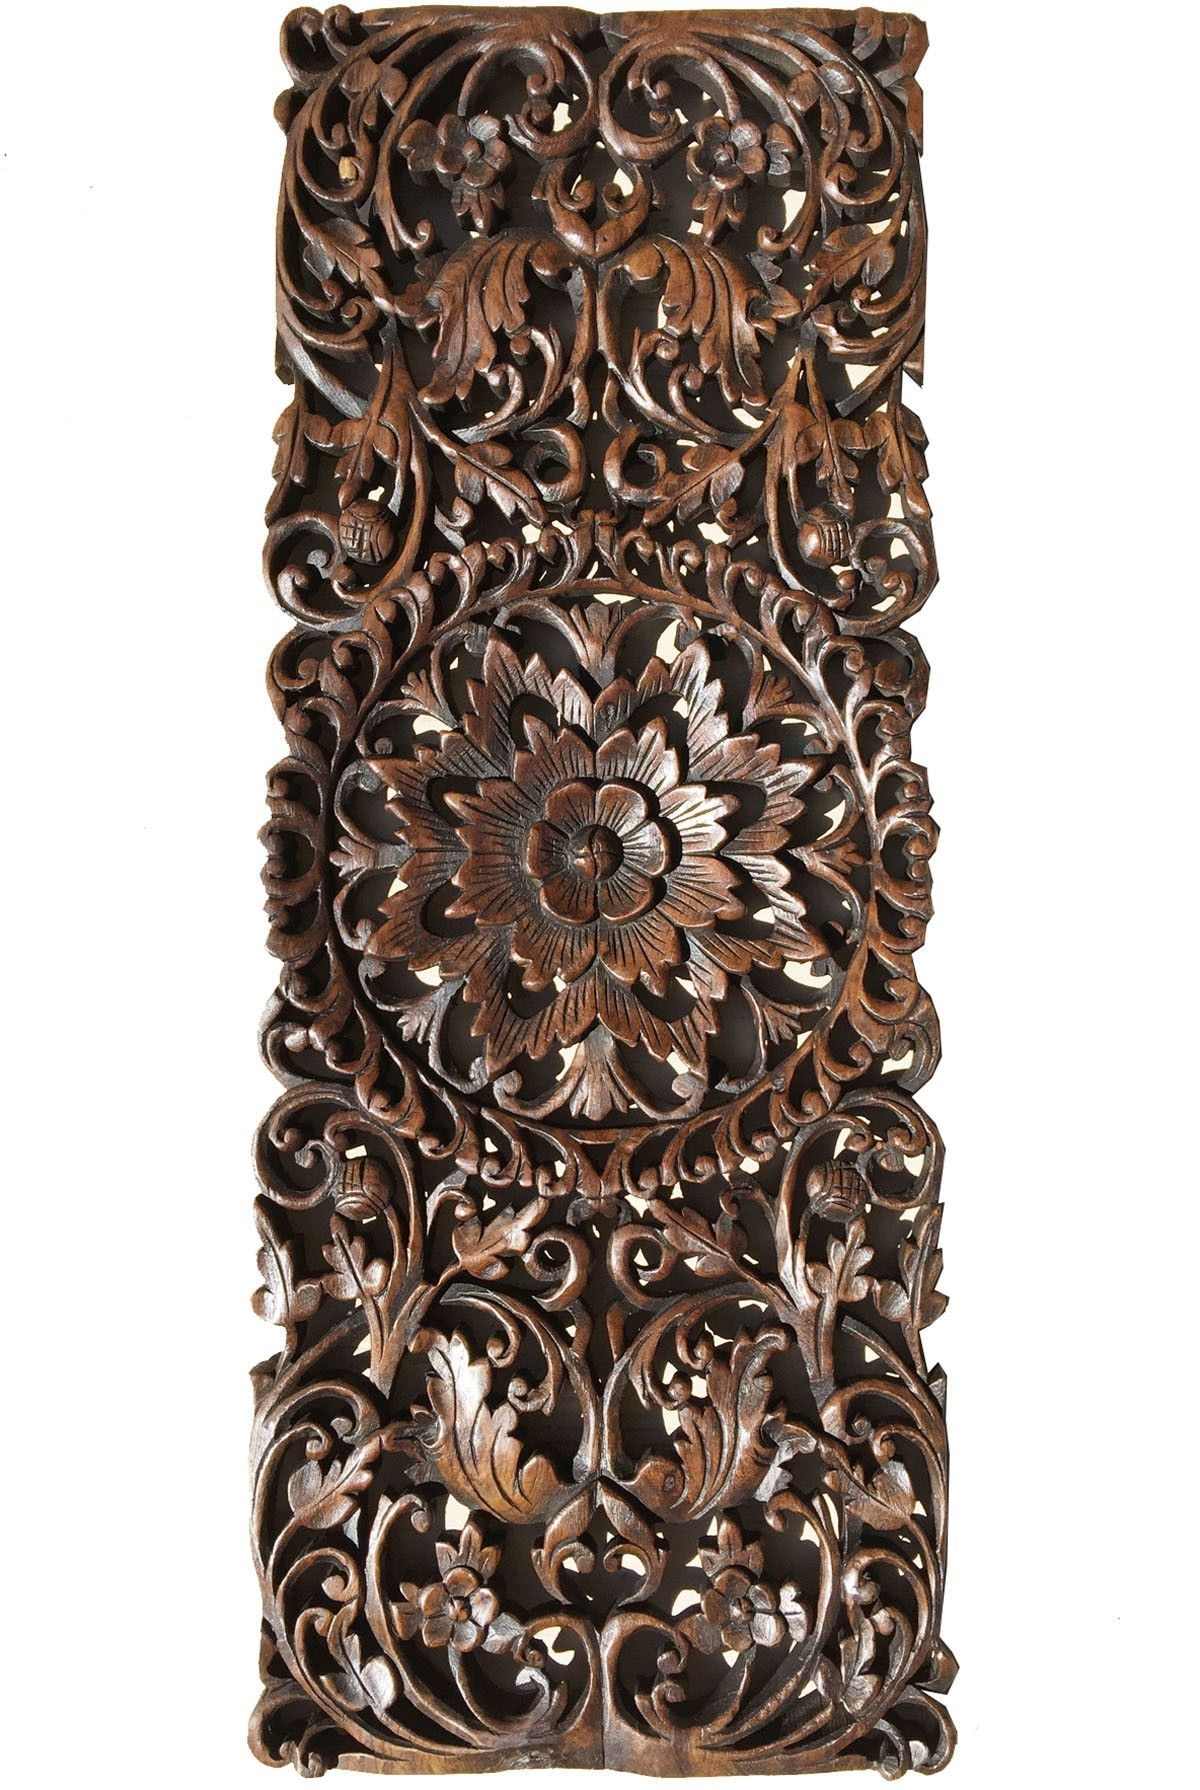 Floral Tropical Carved Wood Wall Panel. Asian Wall Art Home Decor In 2017 Asian Wall Art (Gallery 11 of 15)